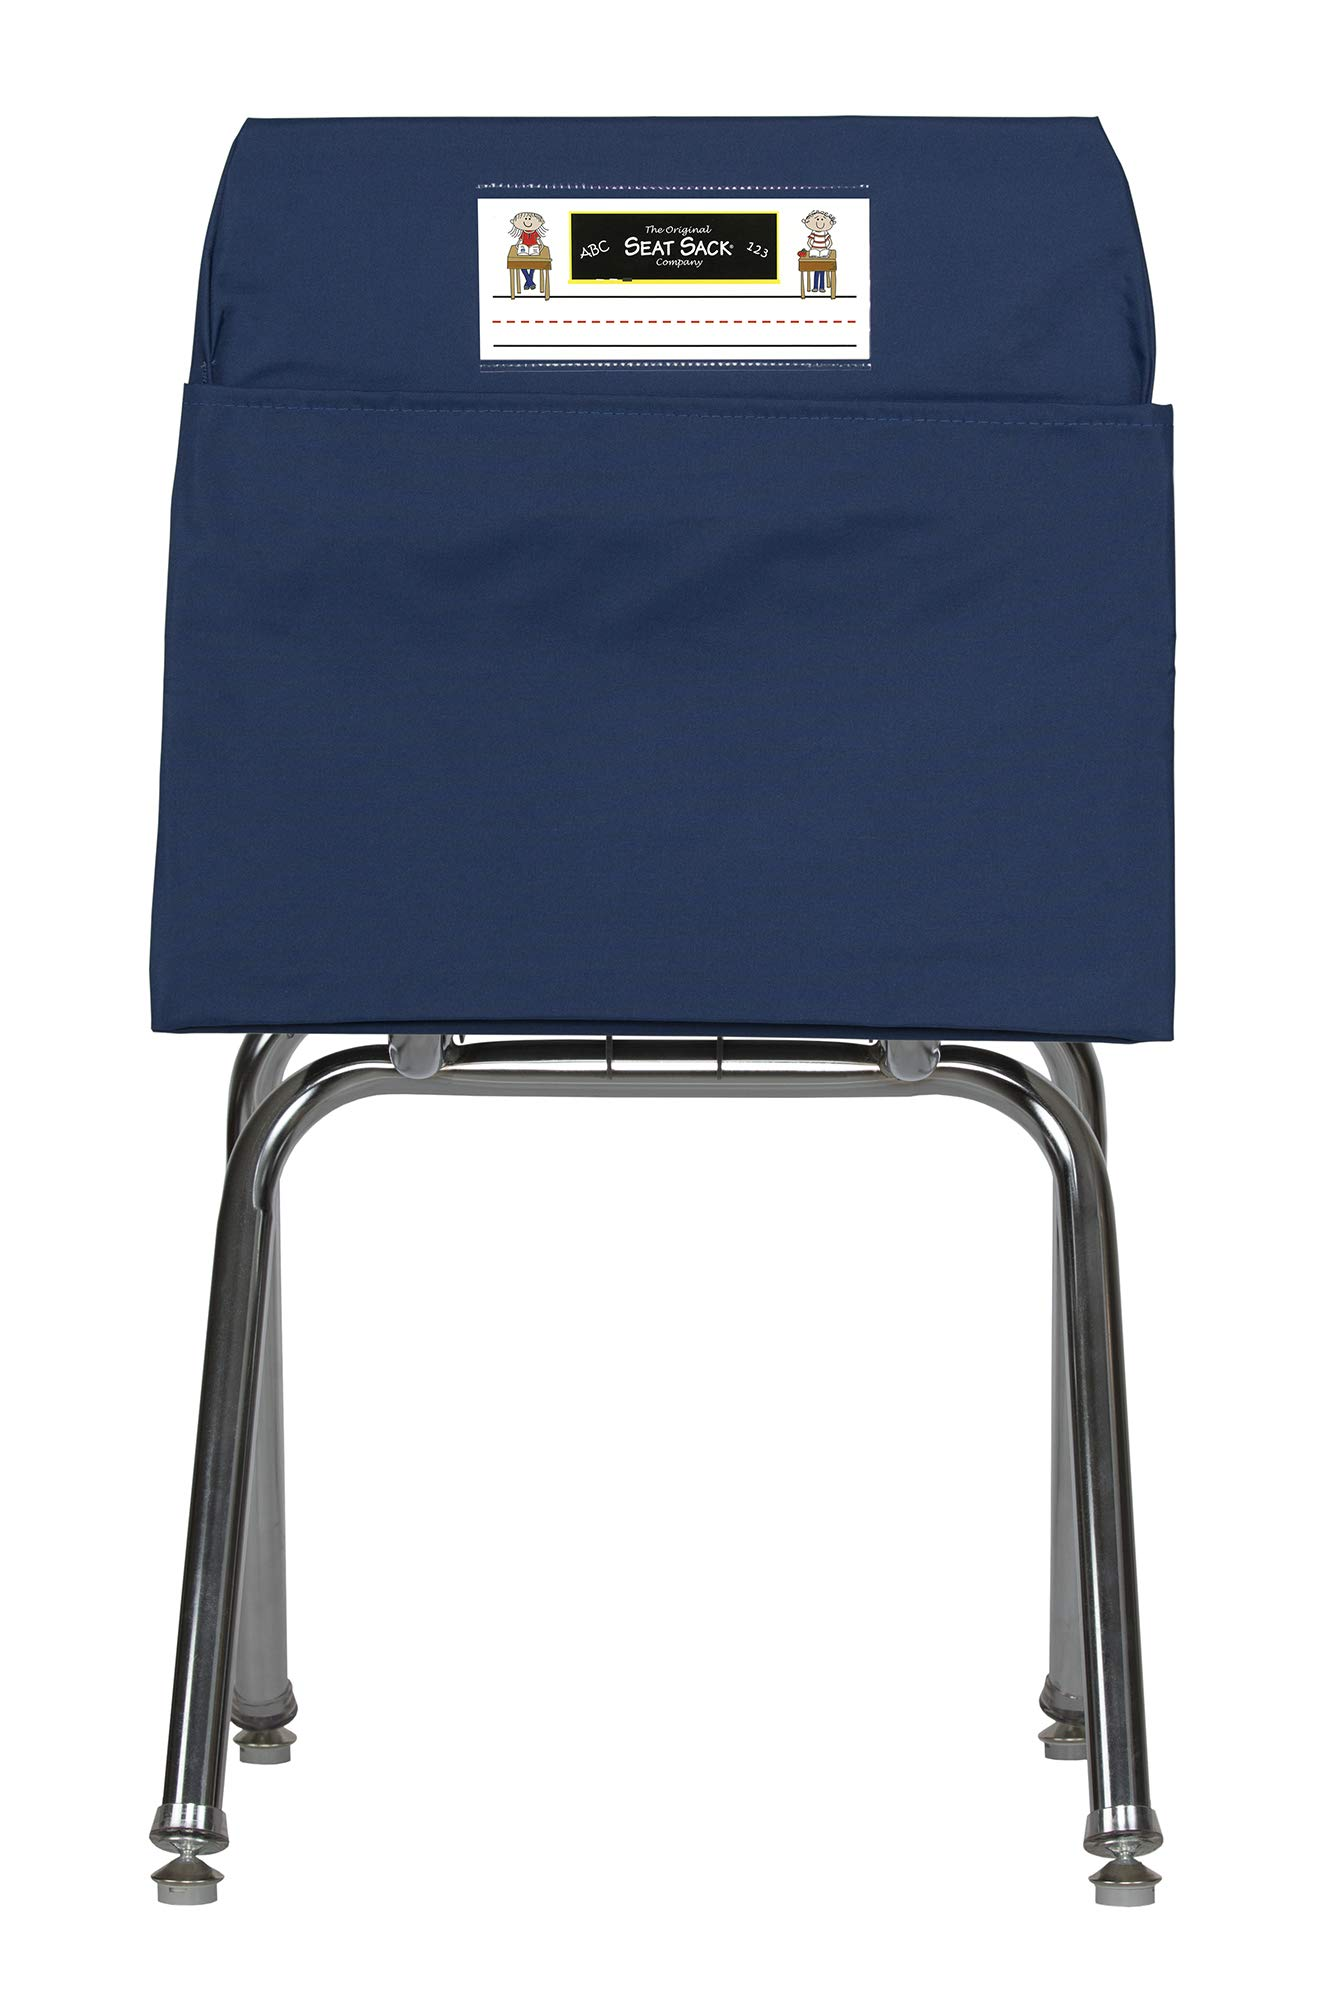 Seat Sack Storage Pocket, Standard, 14 Inches, Blue - 333503 by SEAT SACK